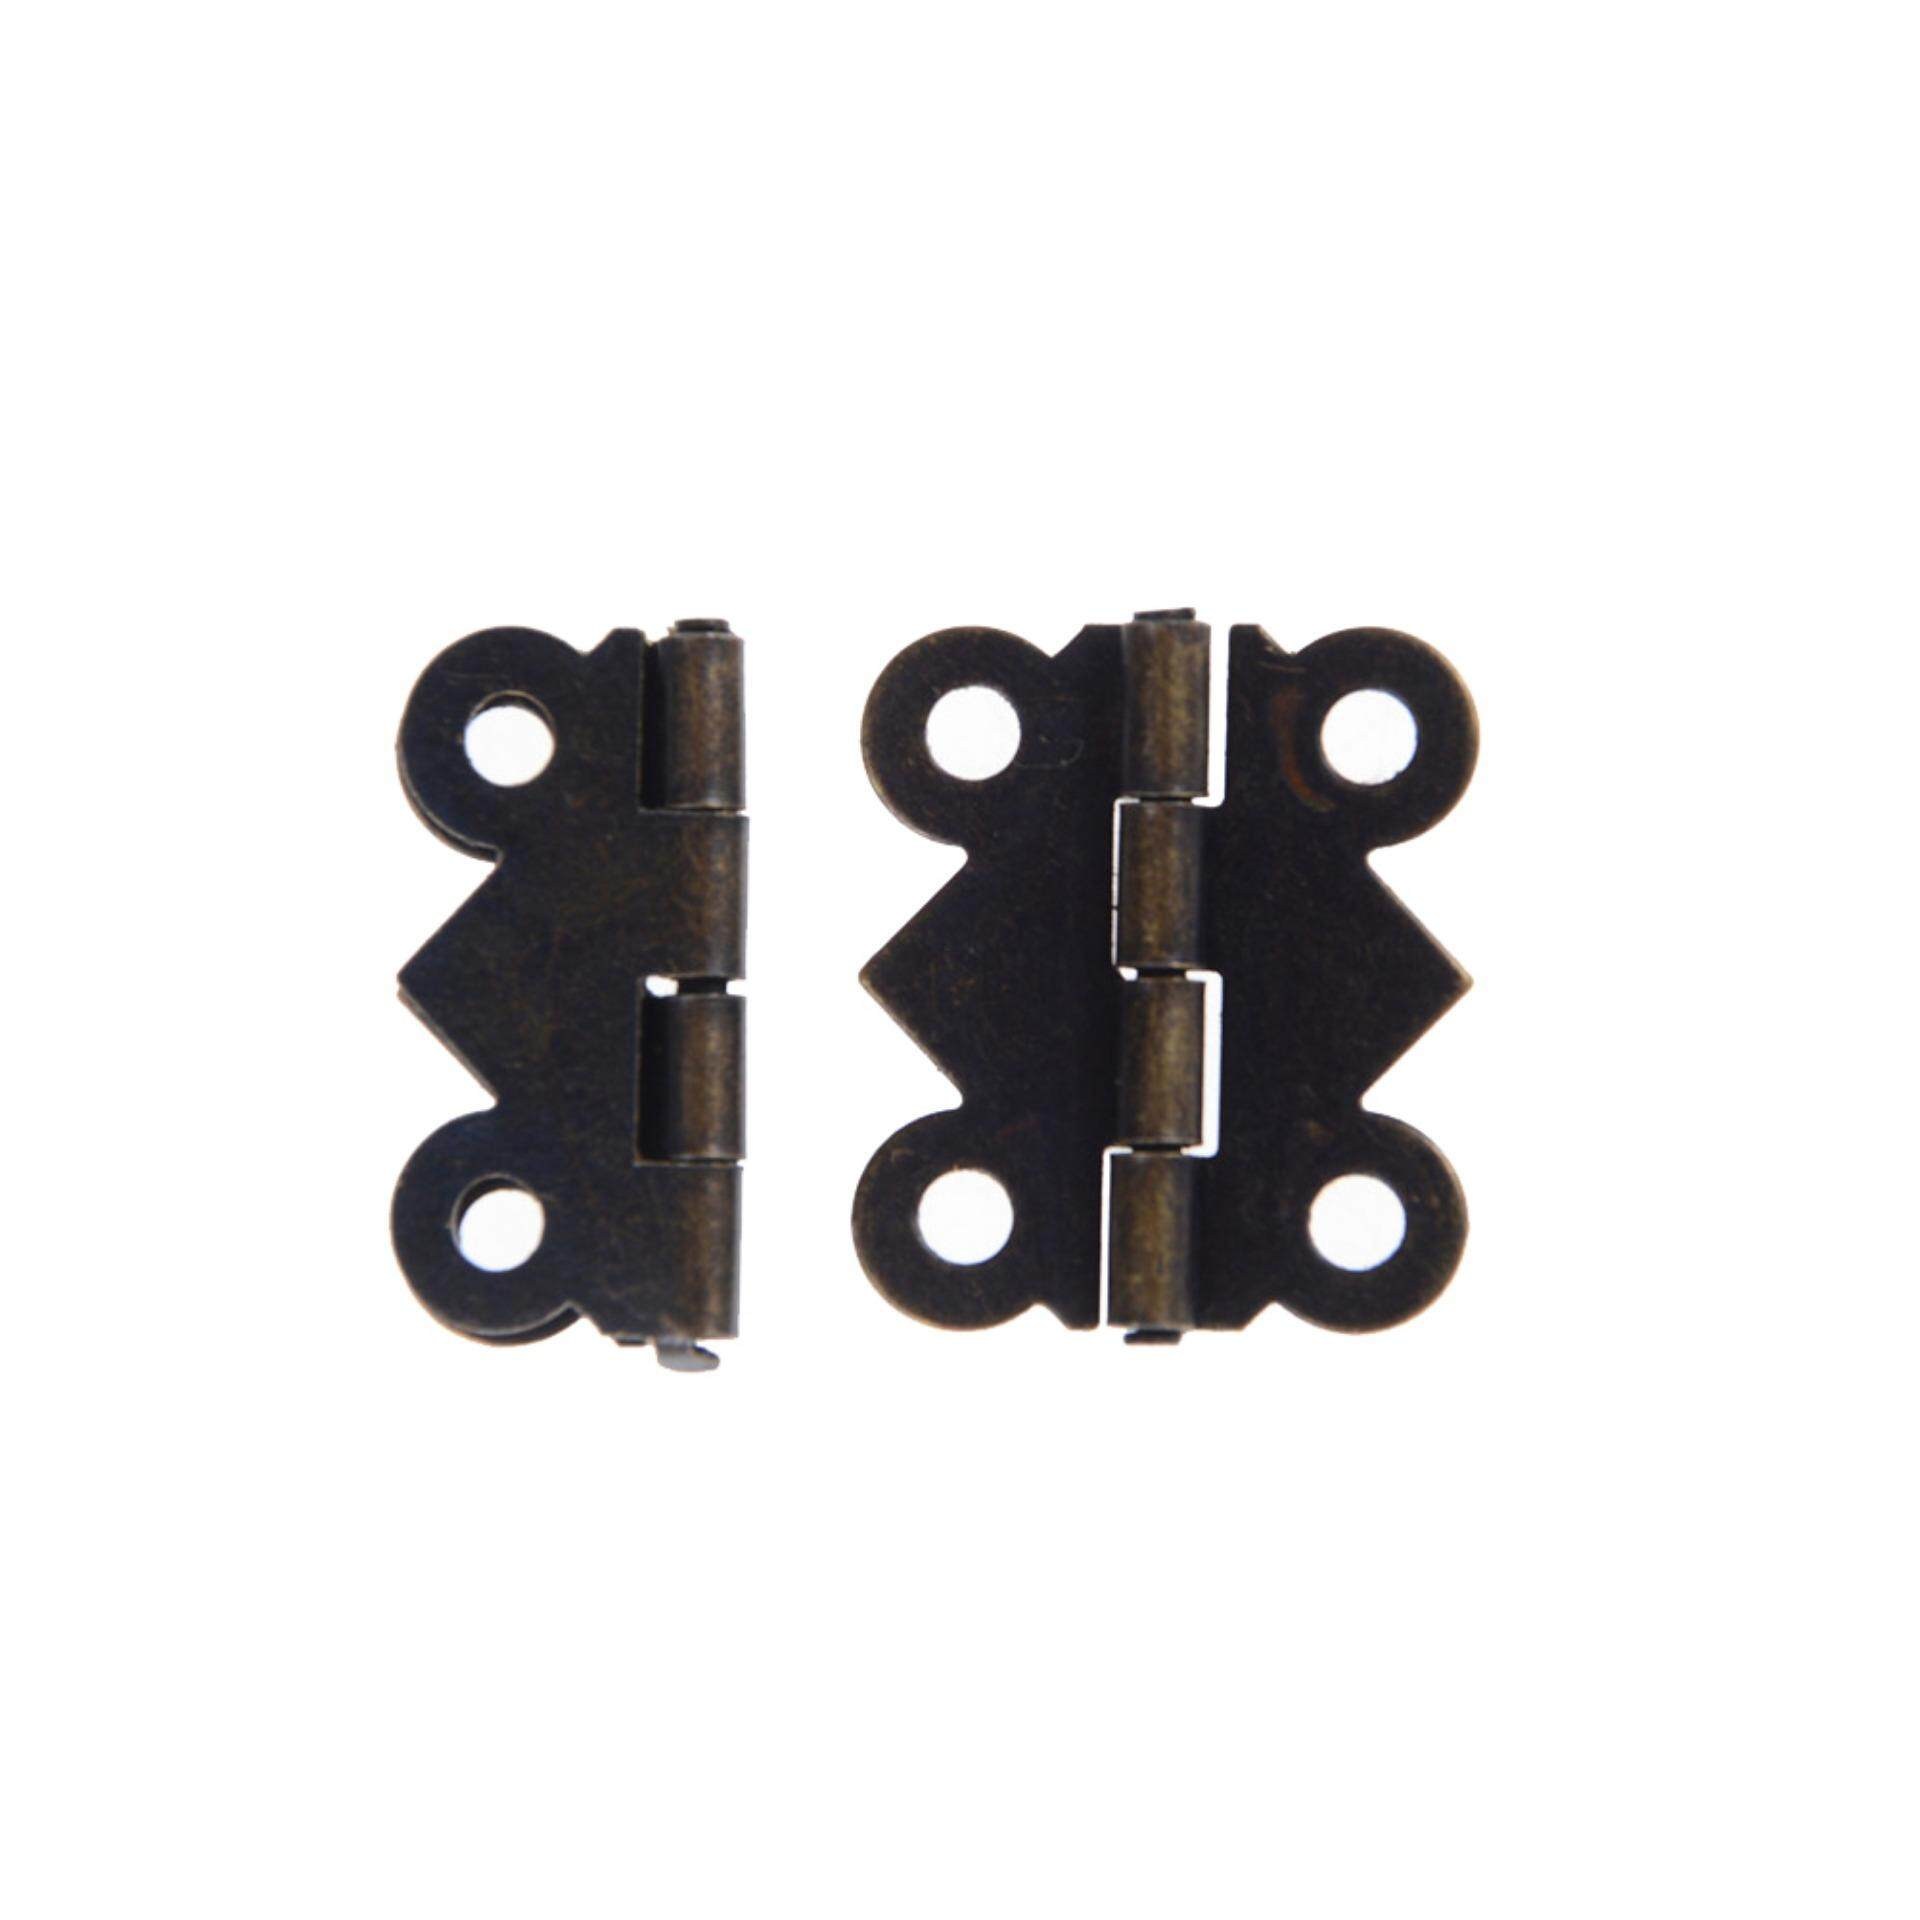 Pinellia flowers Mini Door Butt Hinges Antique Bronze 4 Holes Iron Butterfly Drawer DIY Accessories Butt Hinges Cabinet